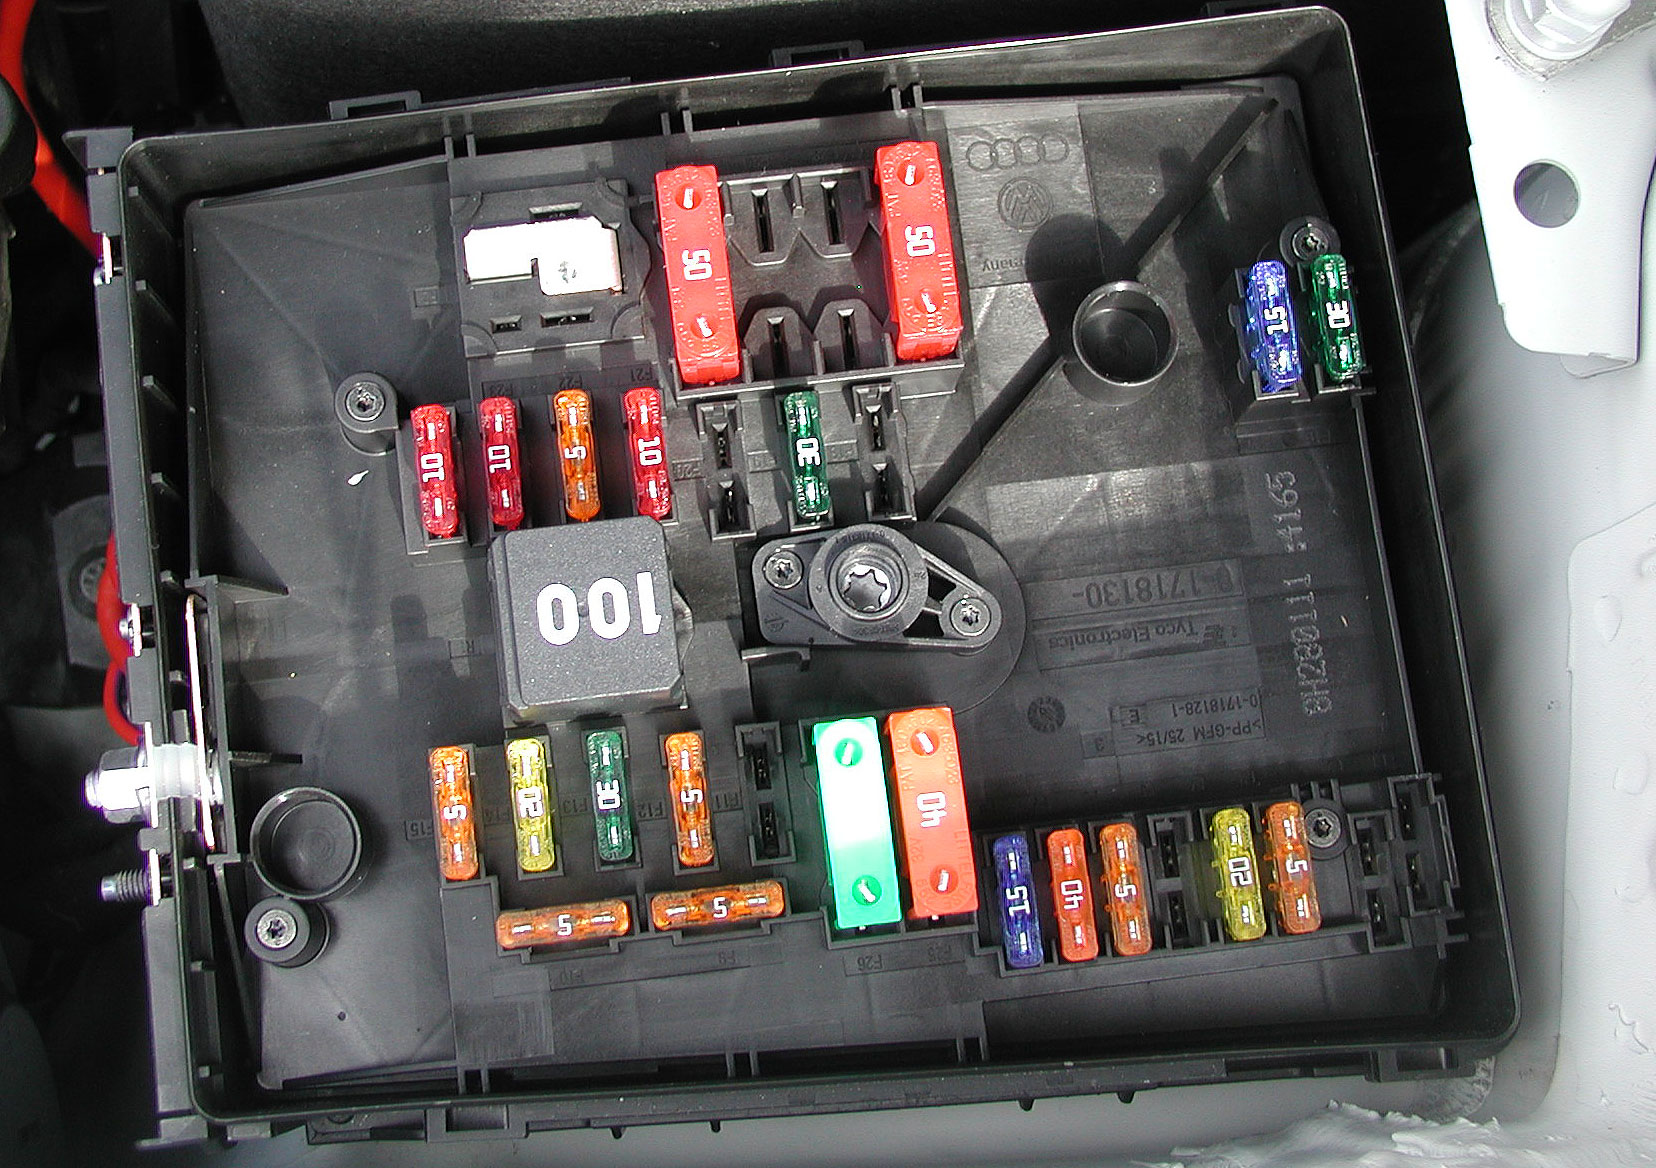 engineFuses2 golf mkv 1 9 tdi rcd 310 battery drain the volkswagen club of 2006 jetta tdi fuse box diagram at reclaimingppi.co